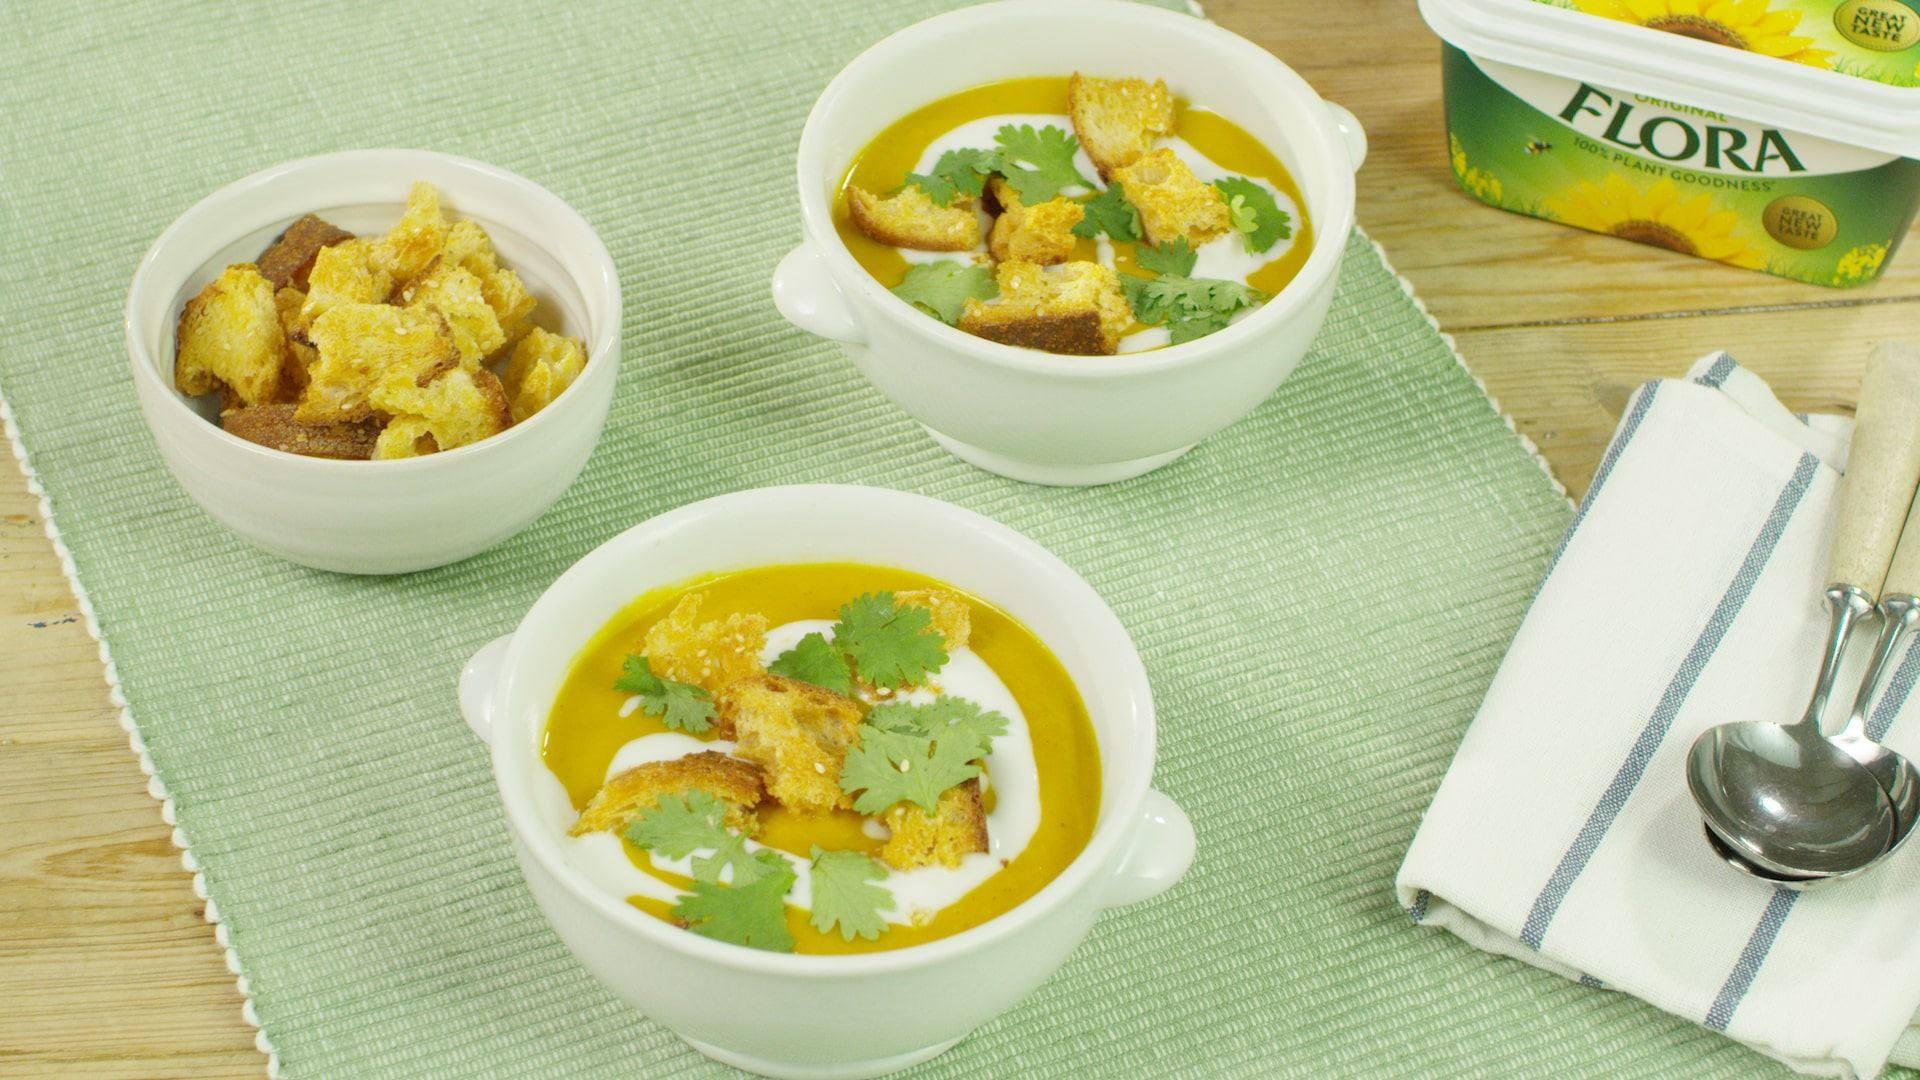 recipe image Spiced Carrot and Parsnip Soup with Croutons